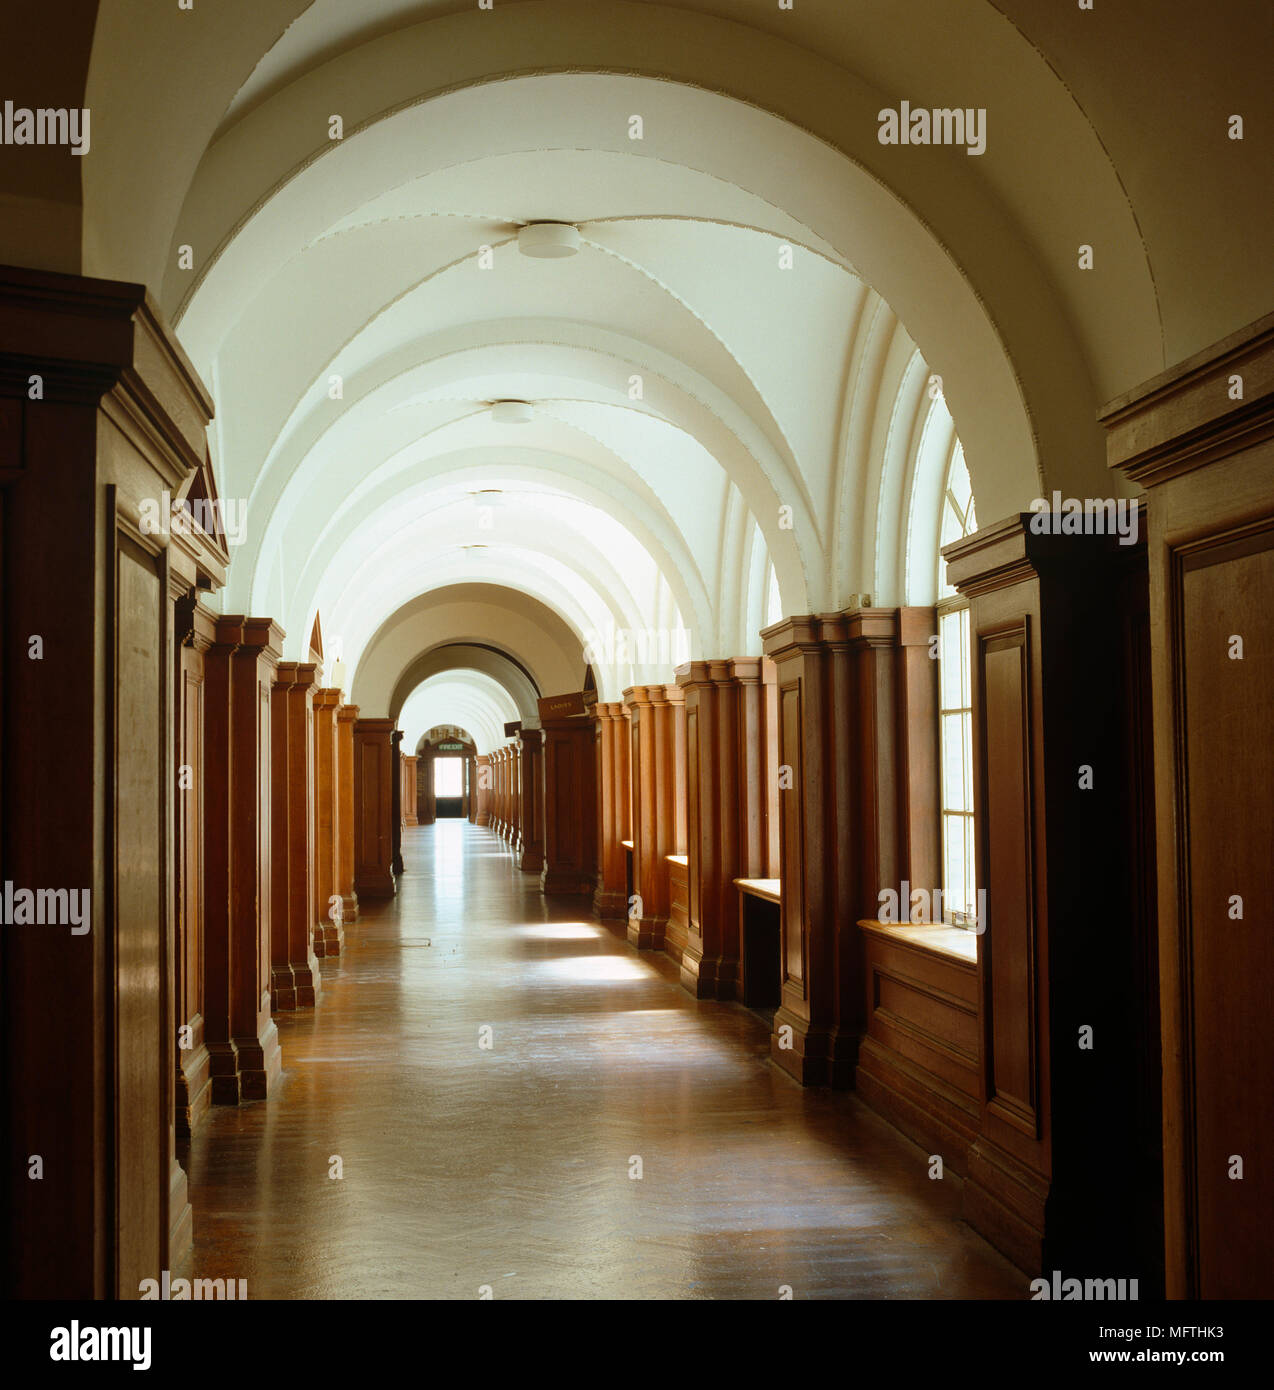 Long Corridor With Wooden Panelled Walls And Arched Ceiling